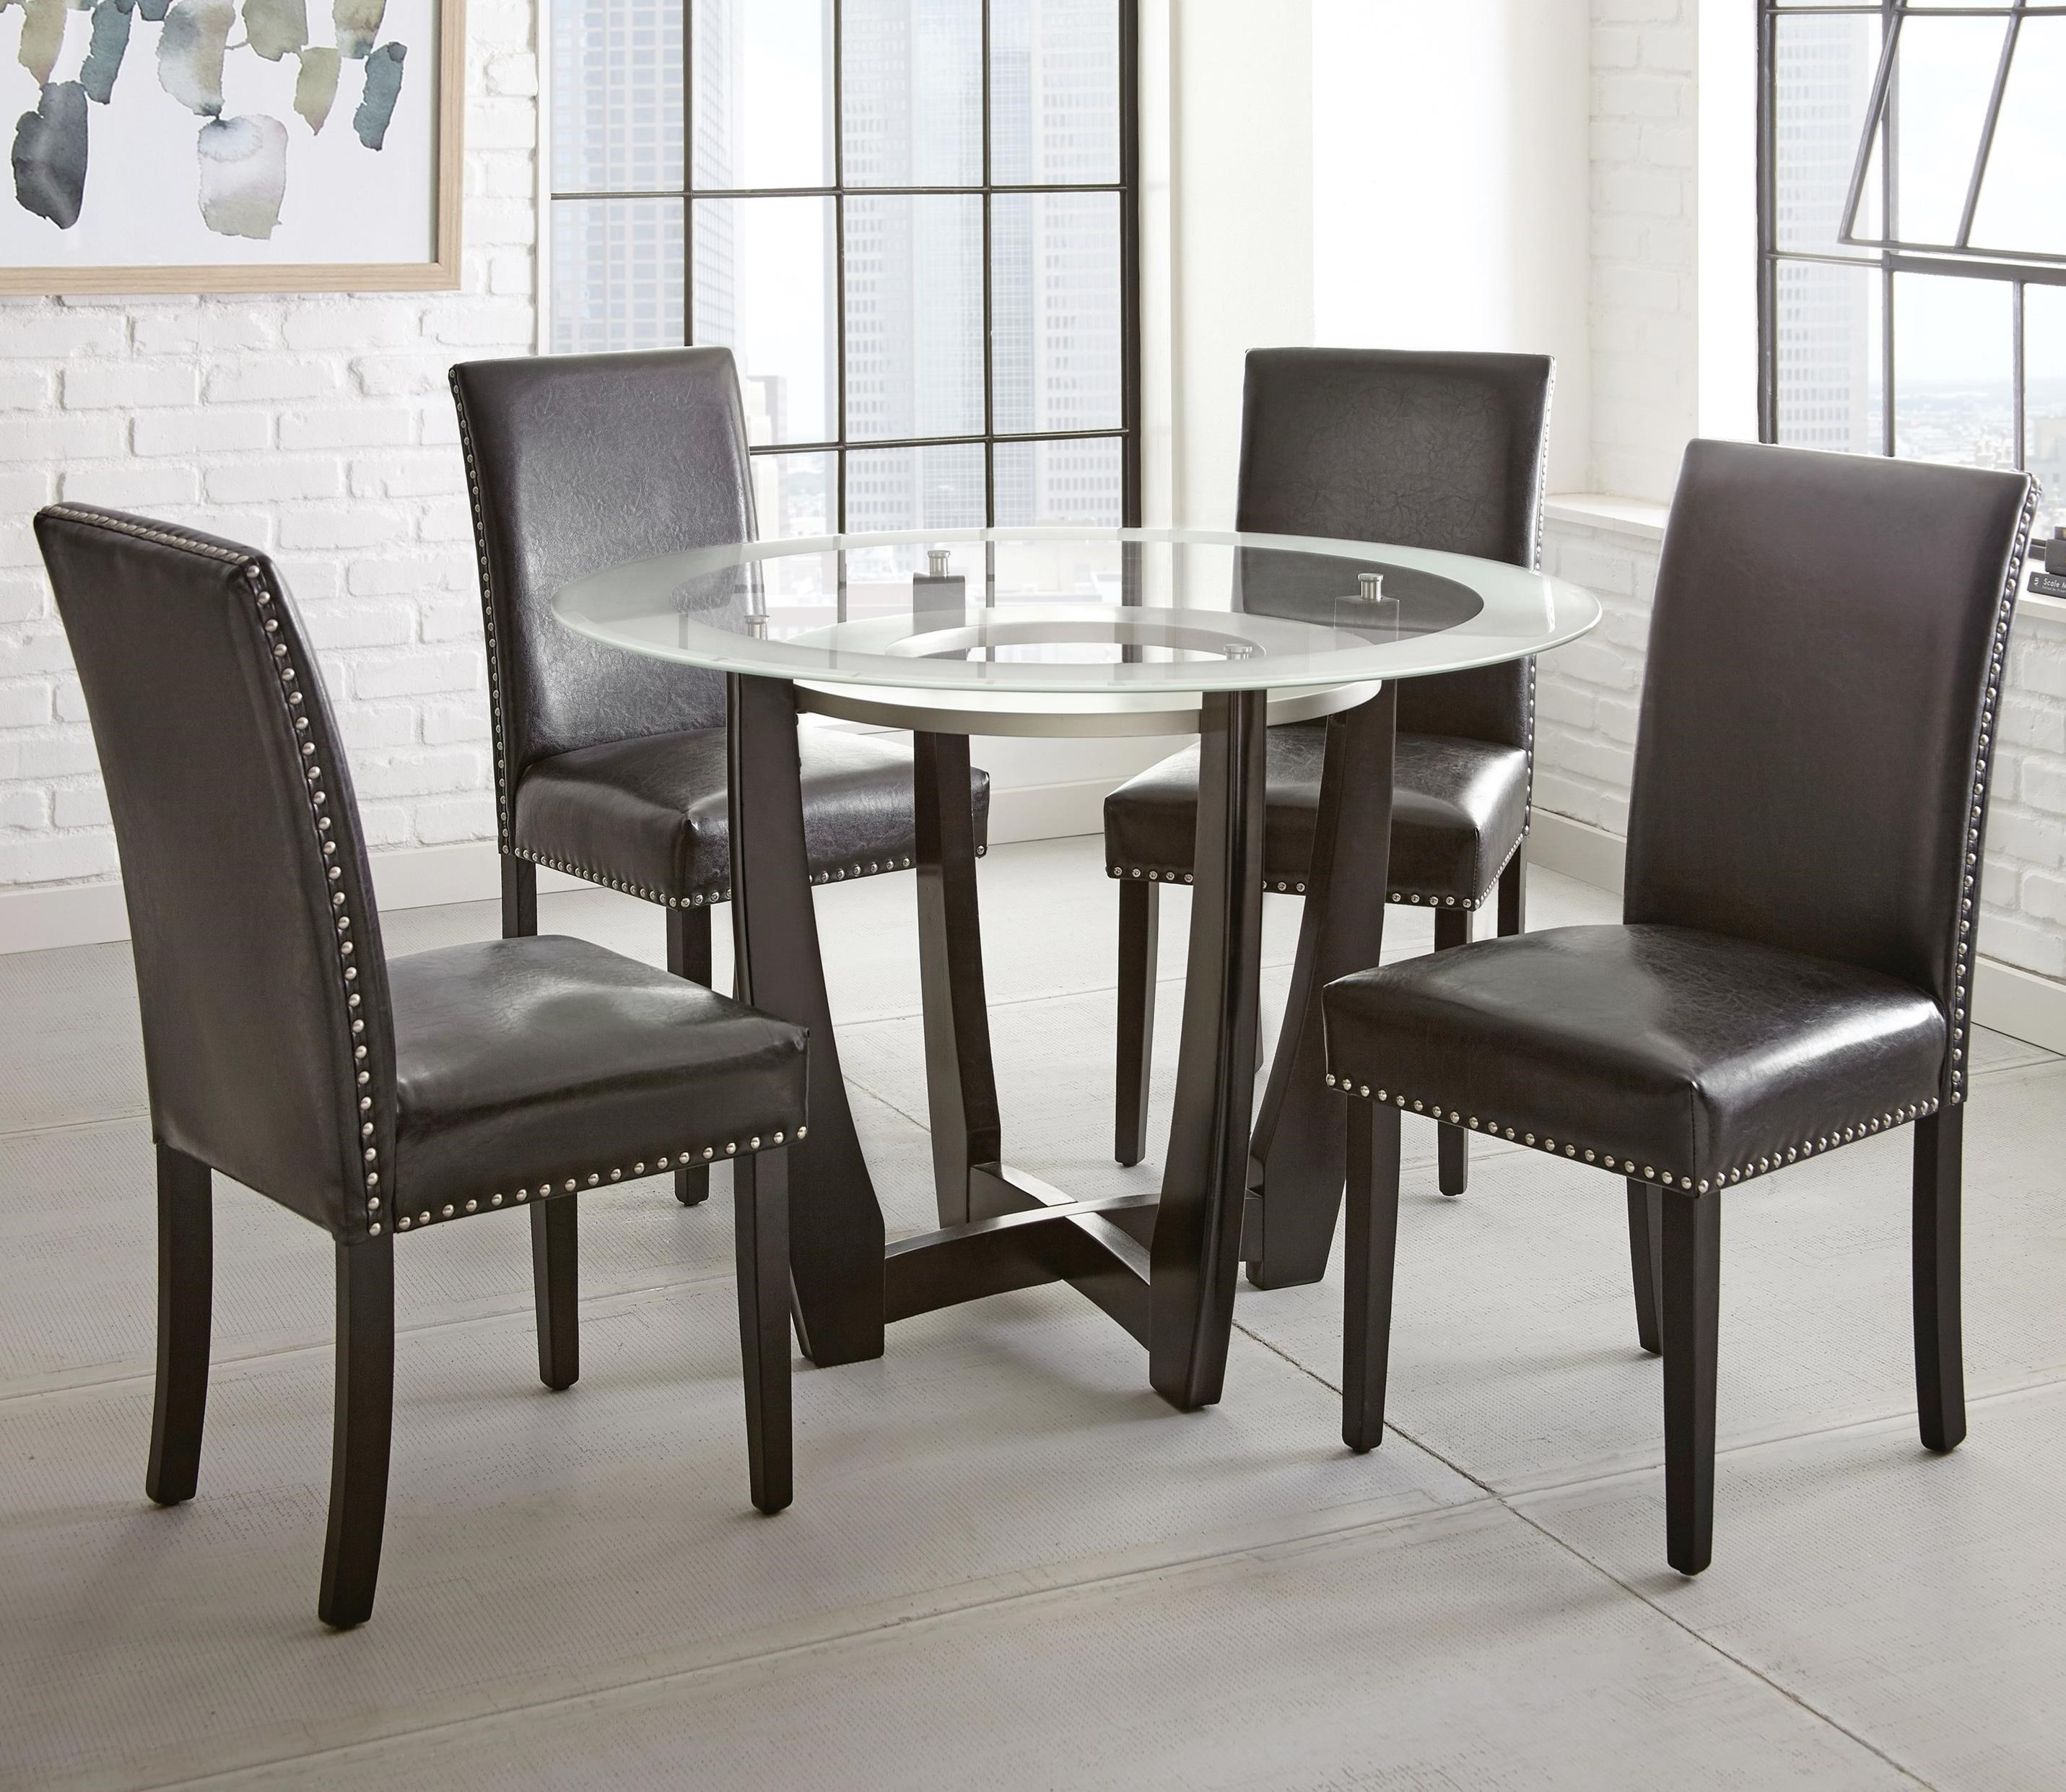 Steve Silver Verano 5pc Contemporary 45 Round Glass Top Dining Table Set With Black Chairs Standard Furniture Dining 5 Piece Sets